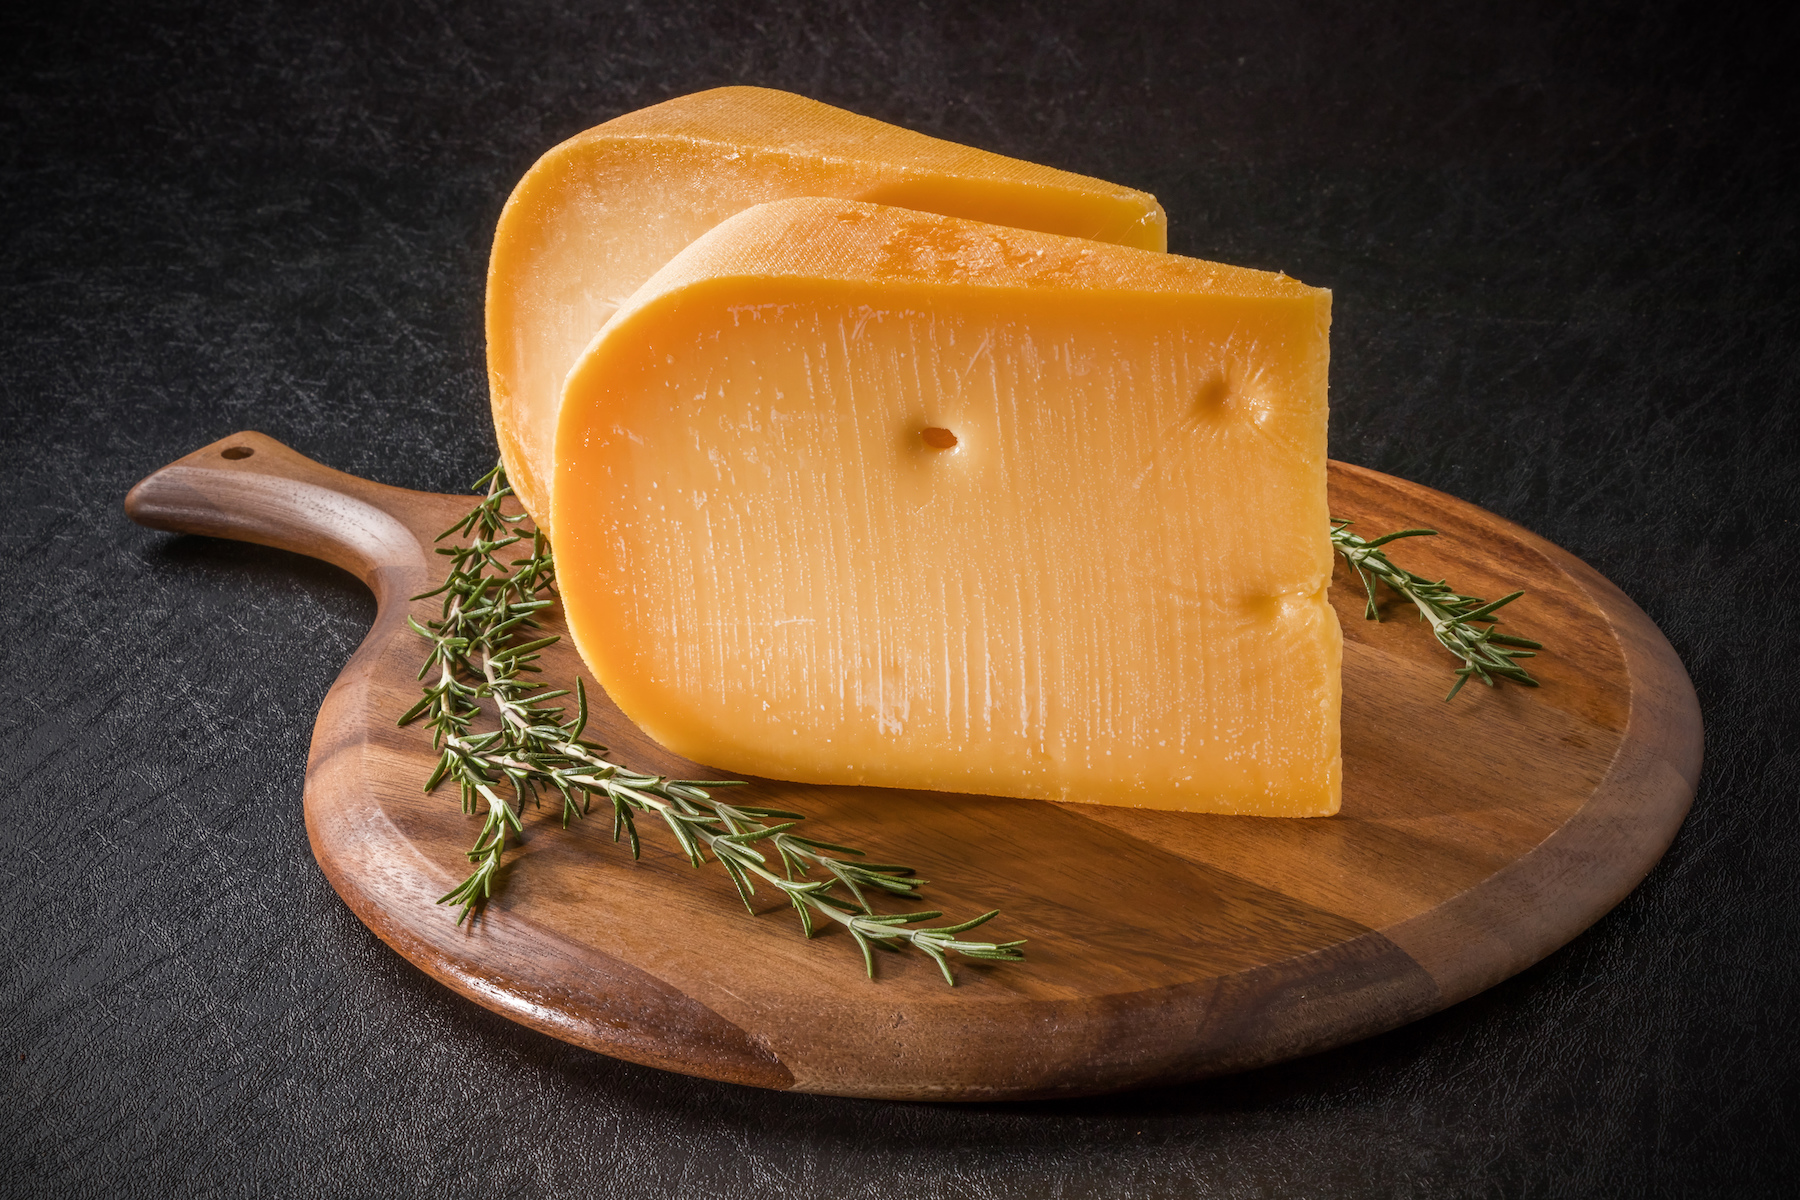 A team of experts has developed a tool that can monitor strains of bacteria with high resolution to maintain a better quality of cheese.